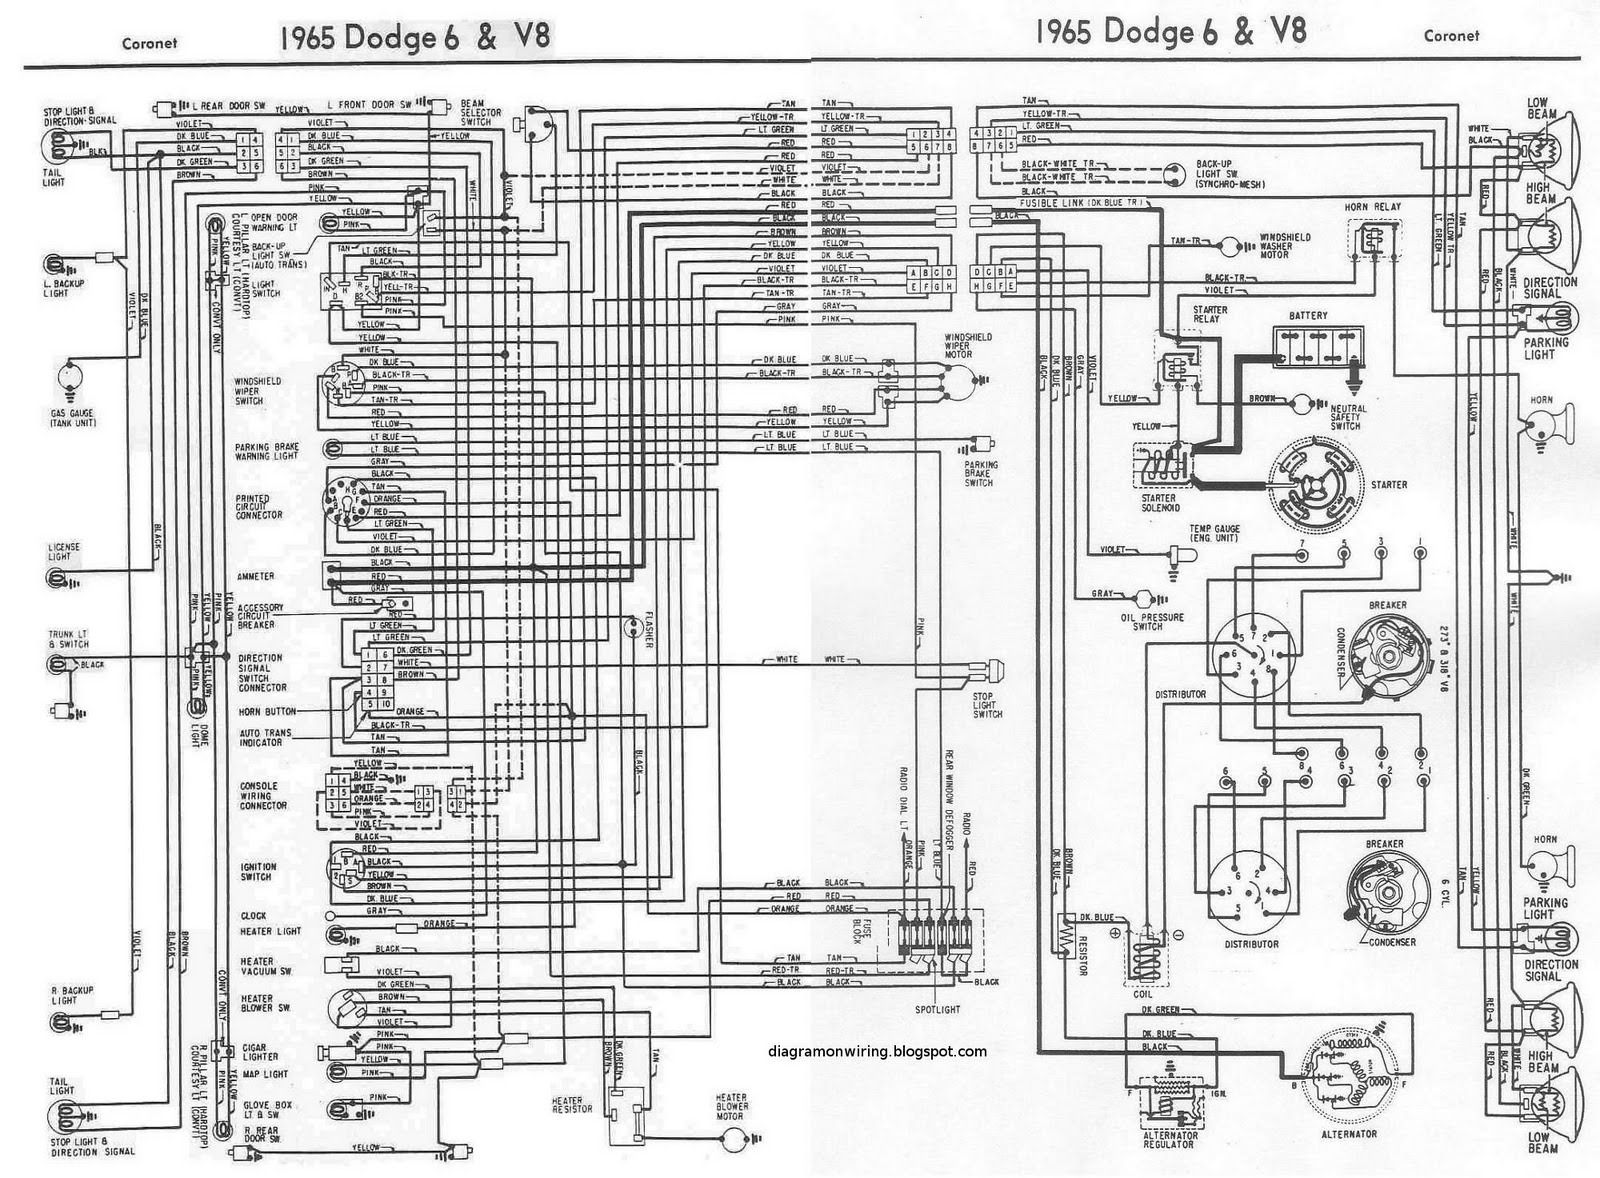 68 Coronet Wiring Diagram Electrical Diagrams Forum 1950 Dodge Truck Schematics 6 And V8 1965 Complete All